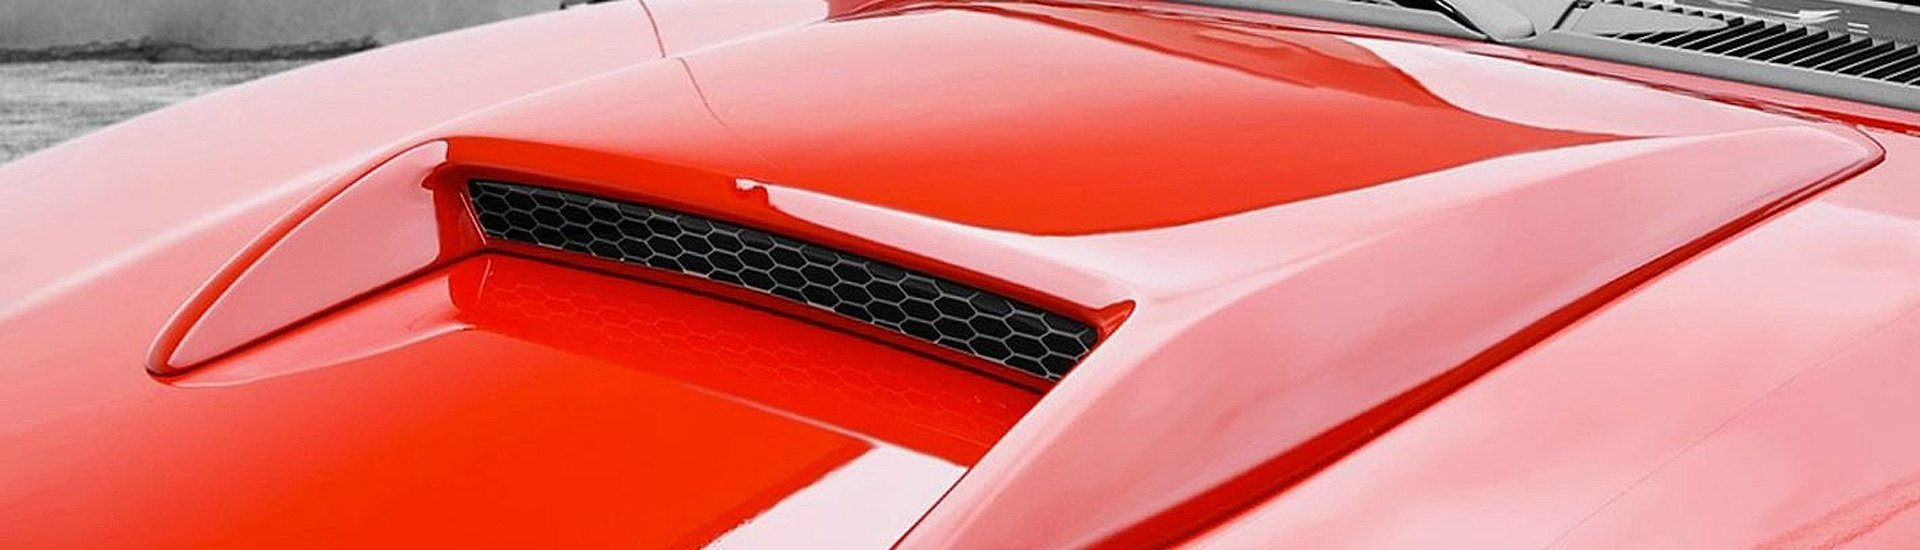 What Is The Procedure To Install A Hood Scoop